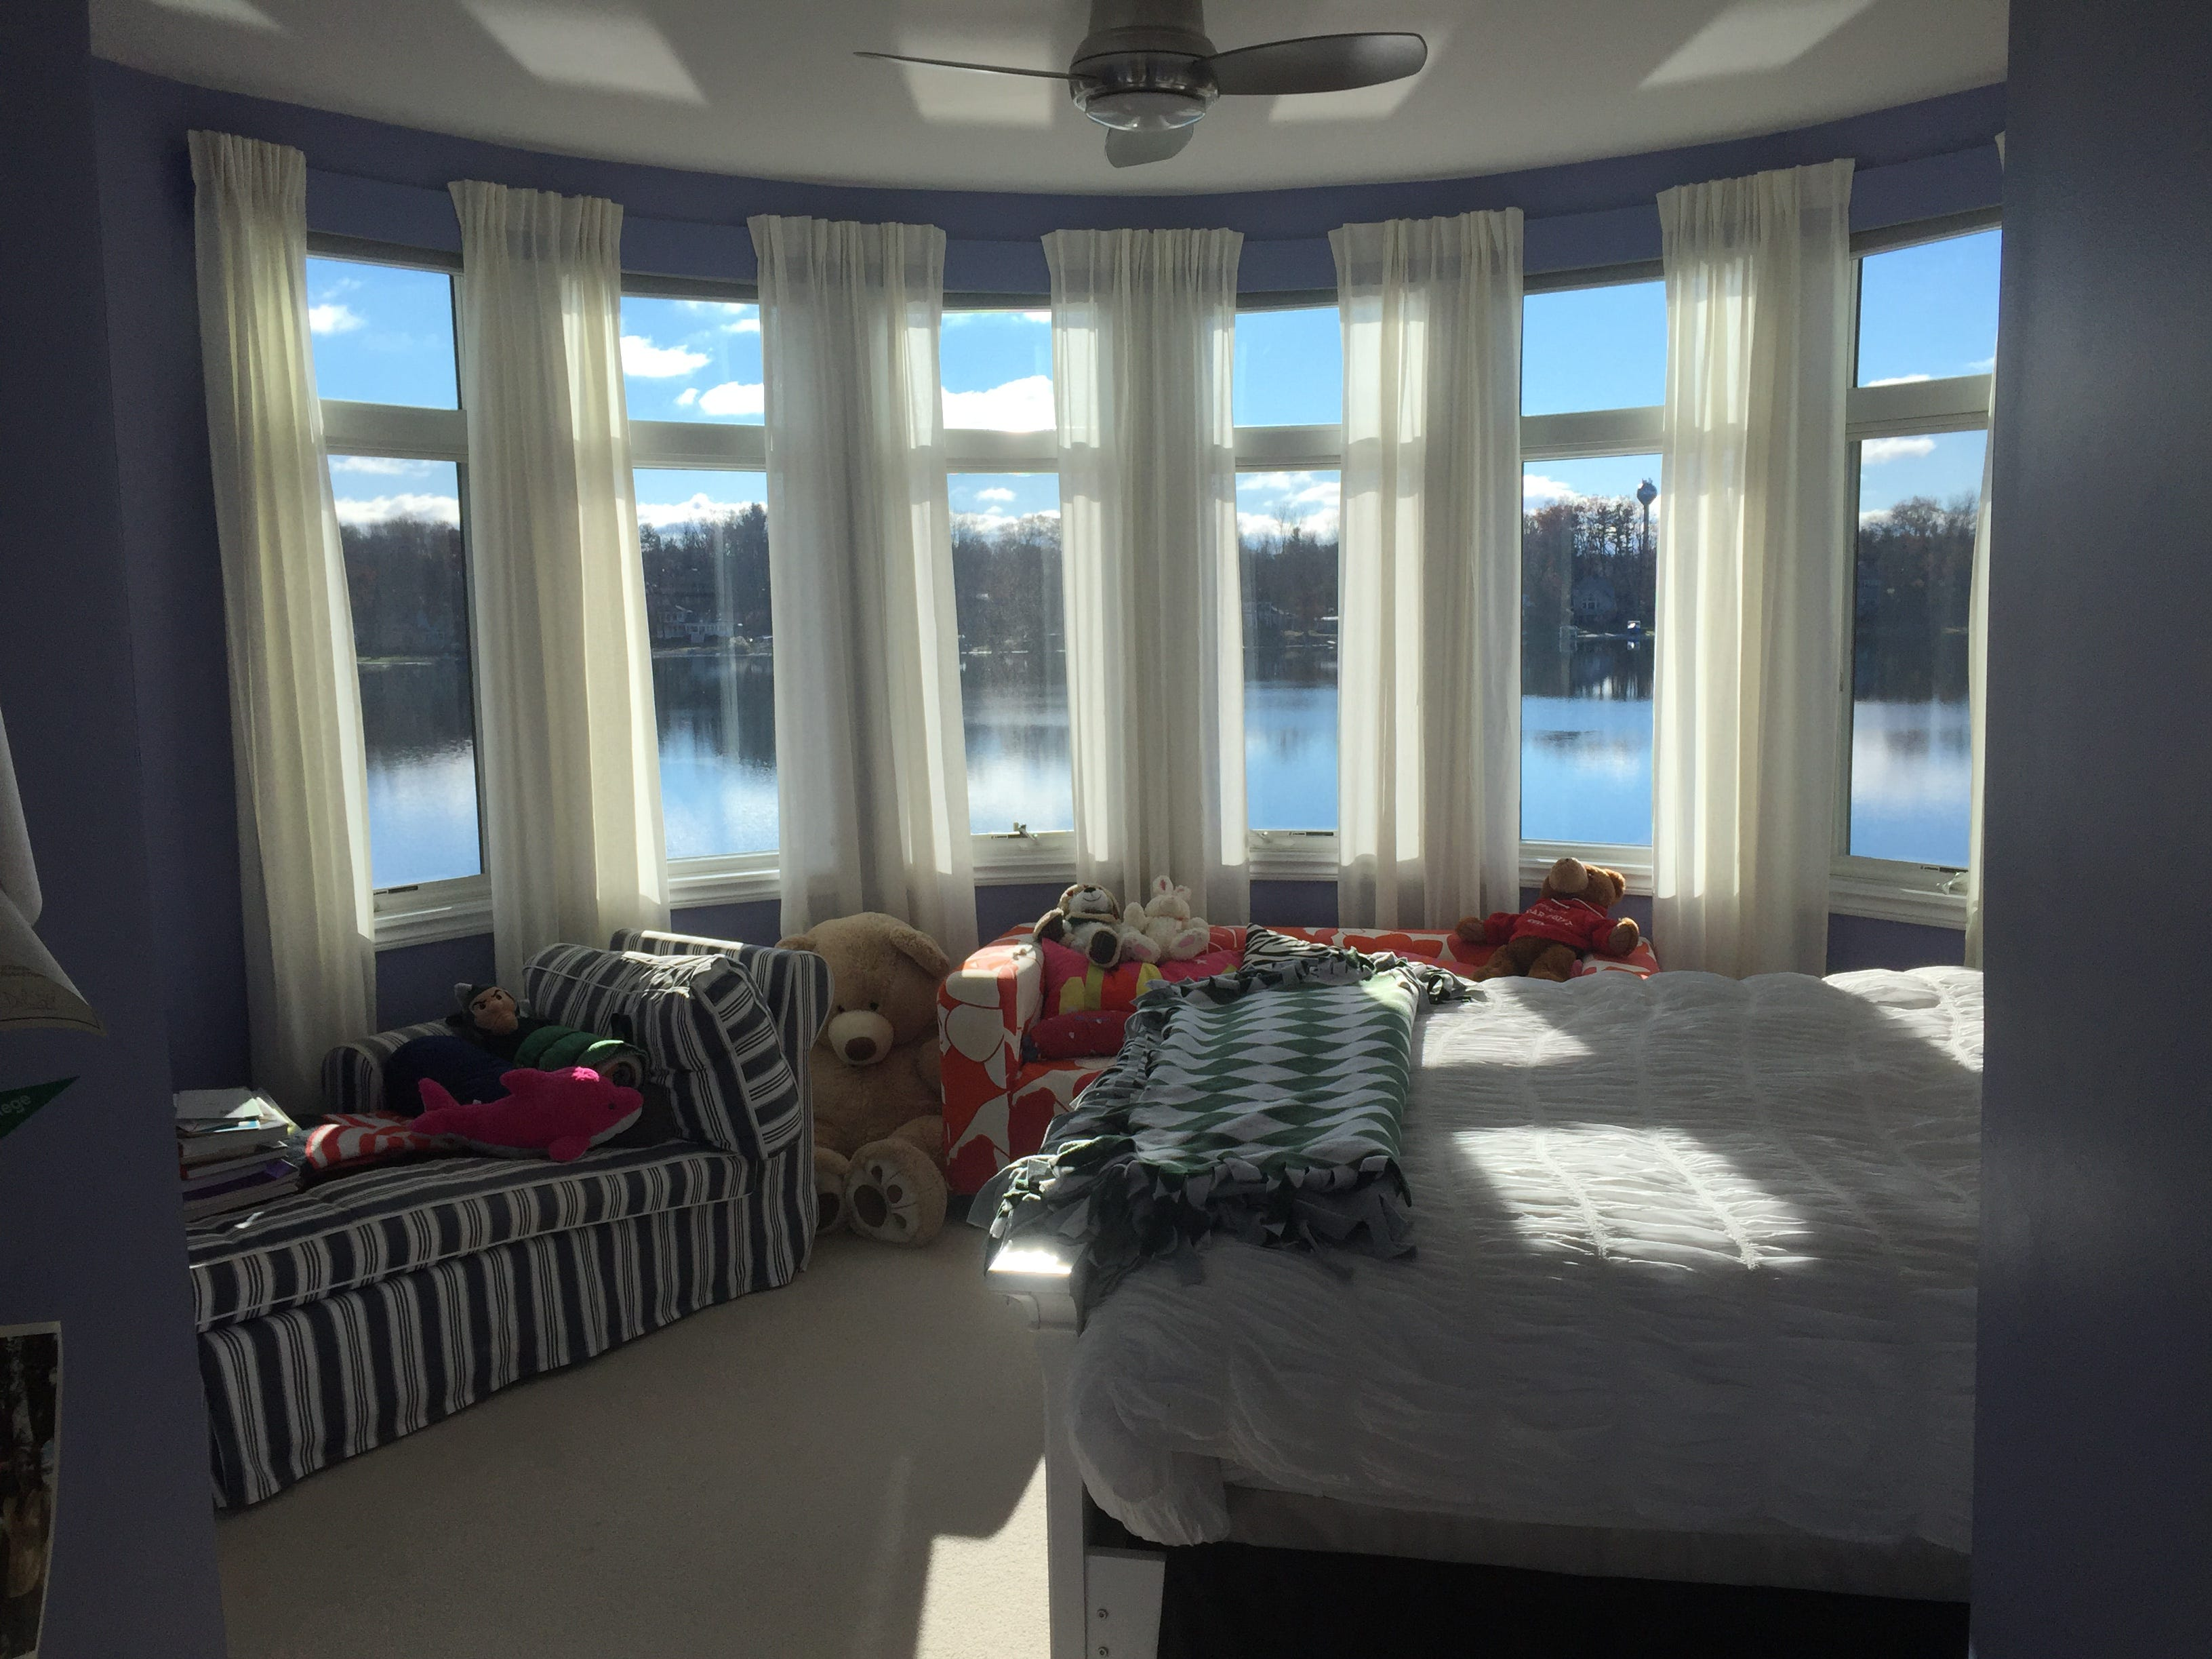 A rounded wall of windows overlooking a lake are a unique feature of a child's bedroom in a Clifford Road home in Genoa Township, shown Tuesday, Dec. 4, 2018